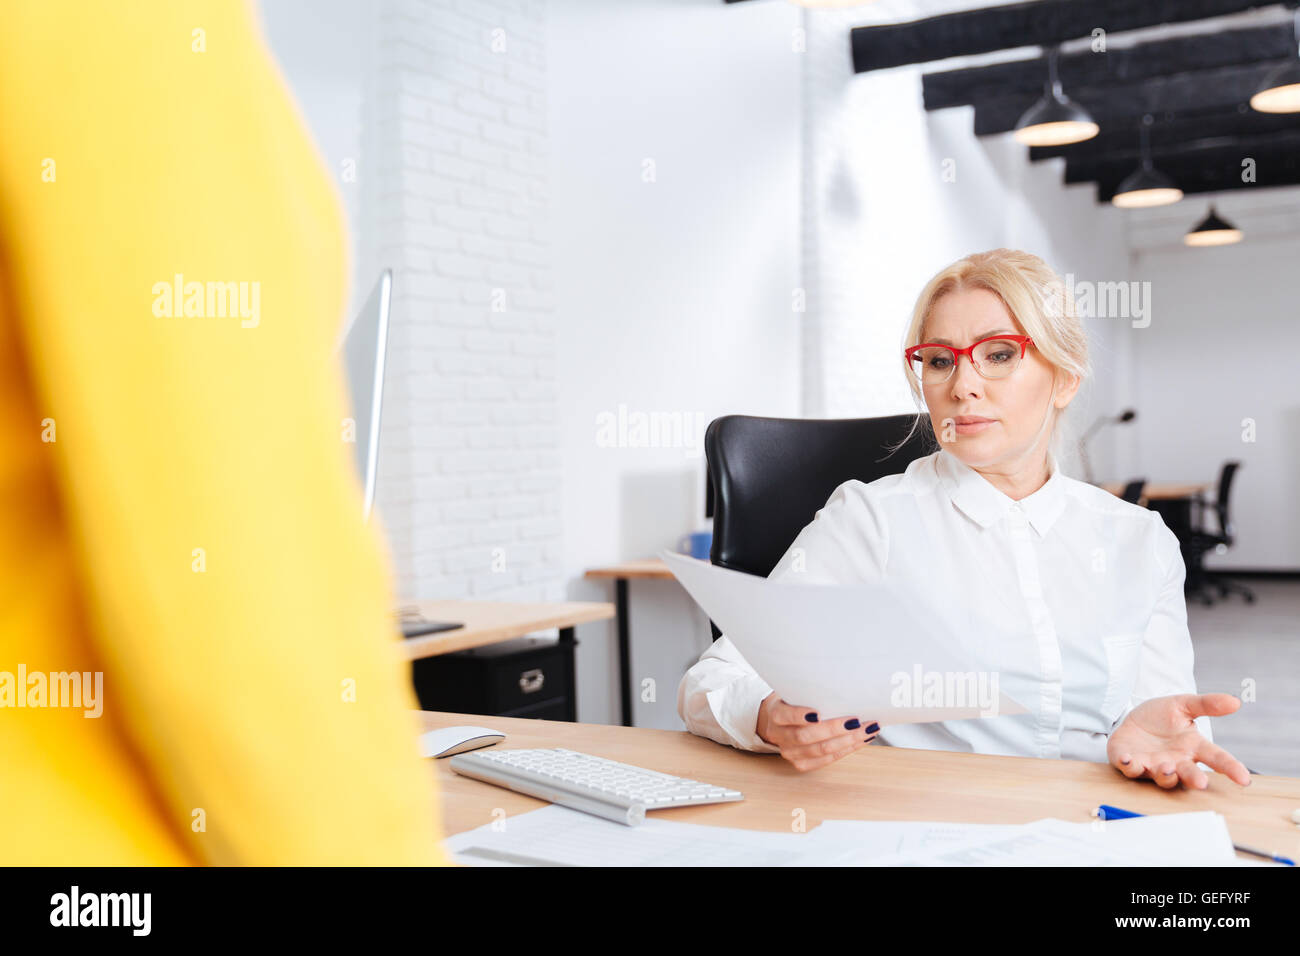 Cheerful beautiful mature businesswoman interviewing candidate for new position in office - Stock Image